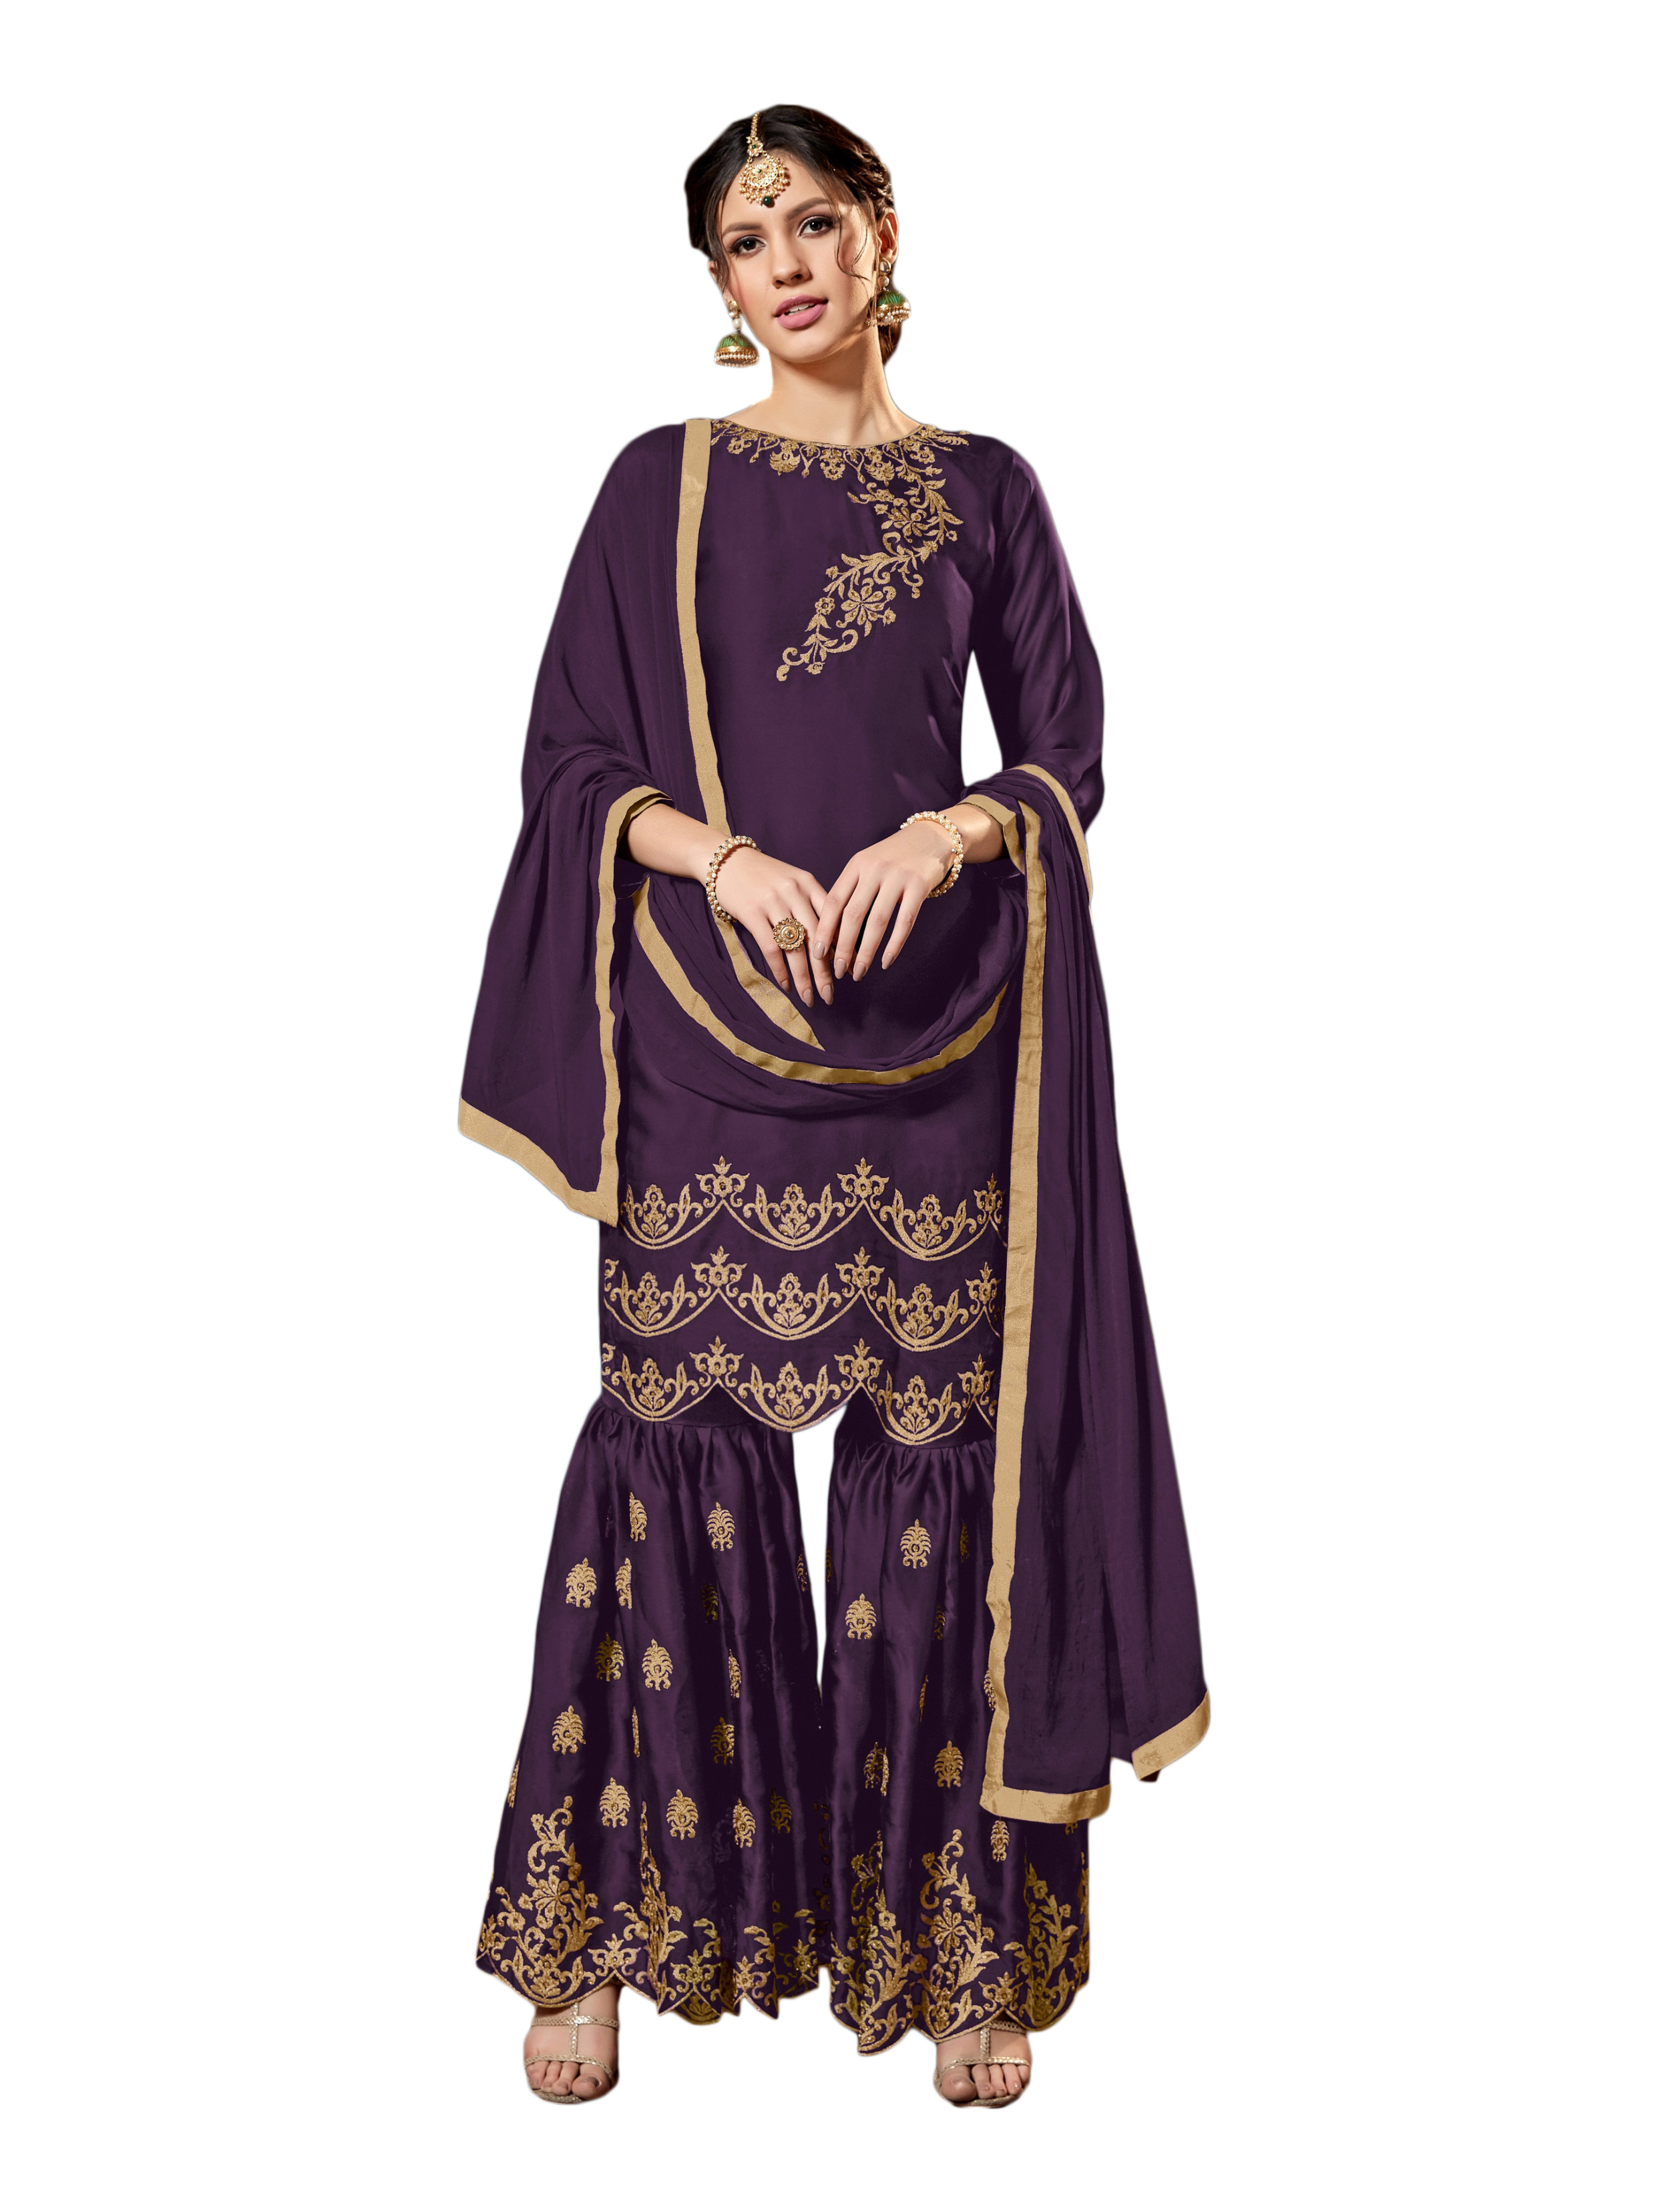 Upcoming Festive And Wedding Season With This Heavy Designer Sharara Suit